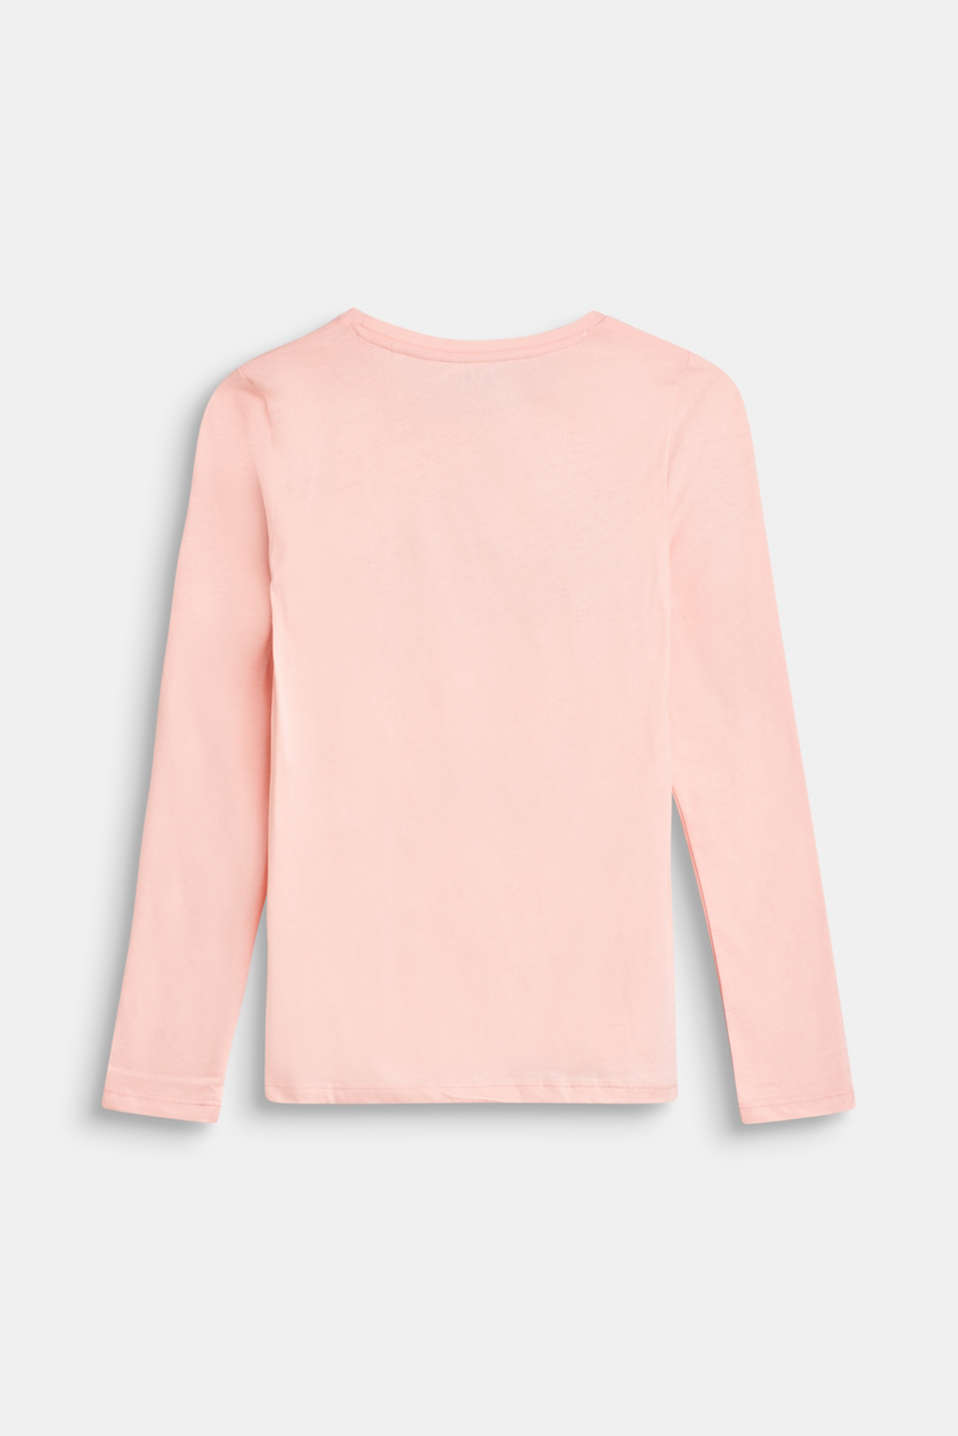 Long sleeve top with reversible sequins, 100% cotton, LCTINTED ROSE, detail image number 1